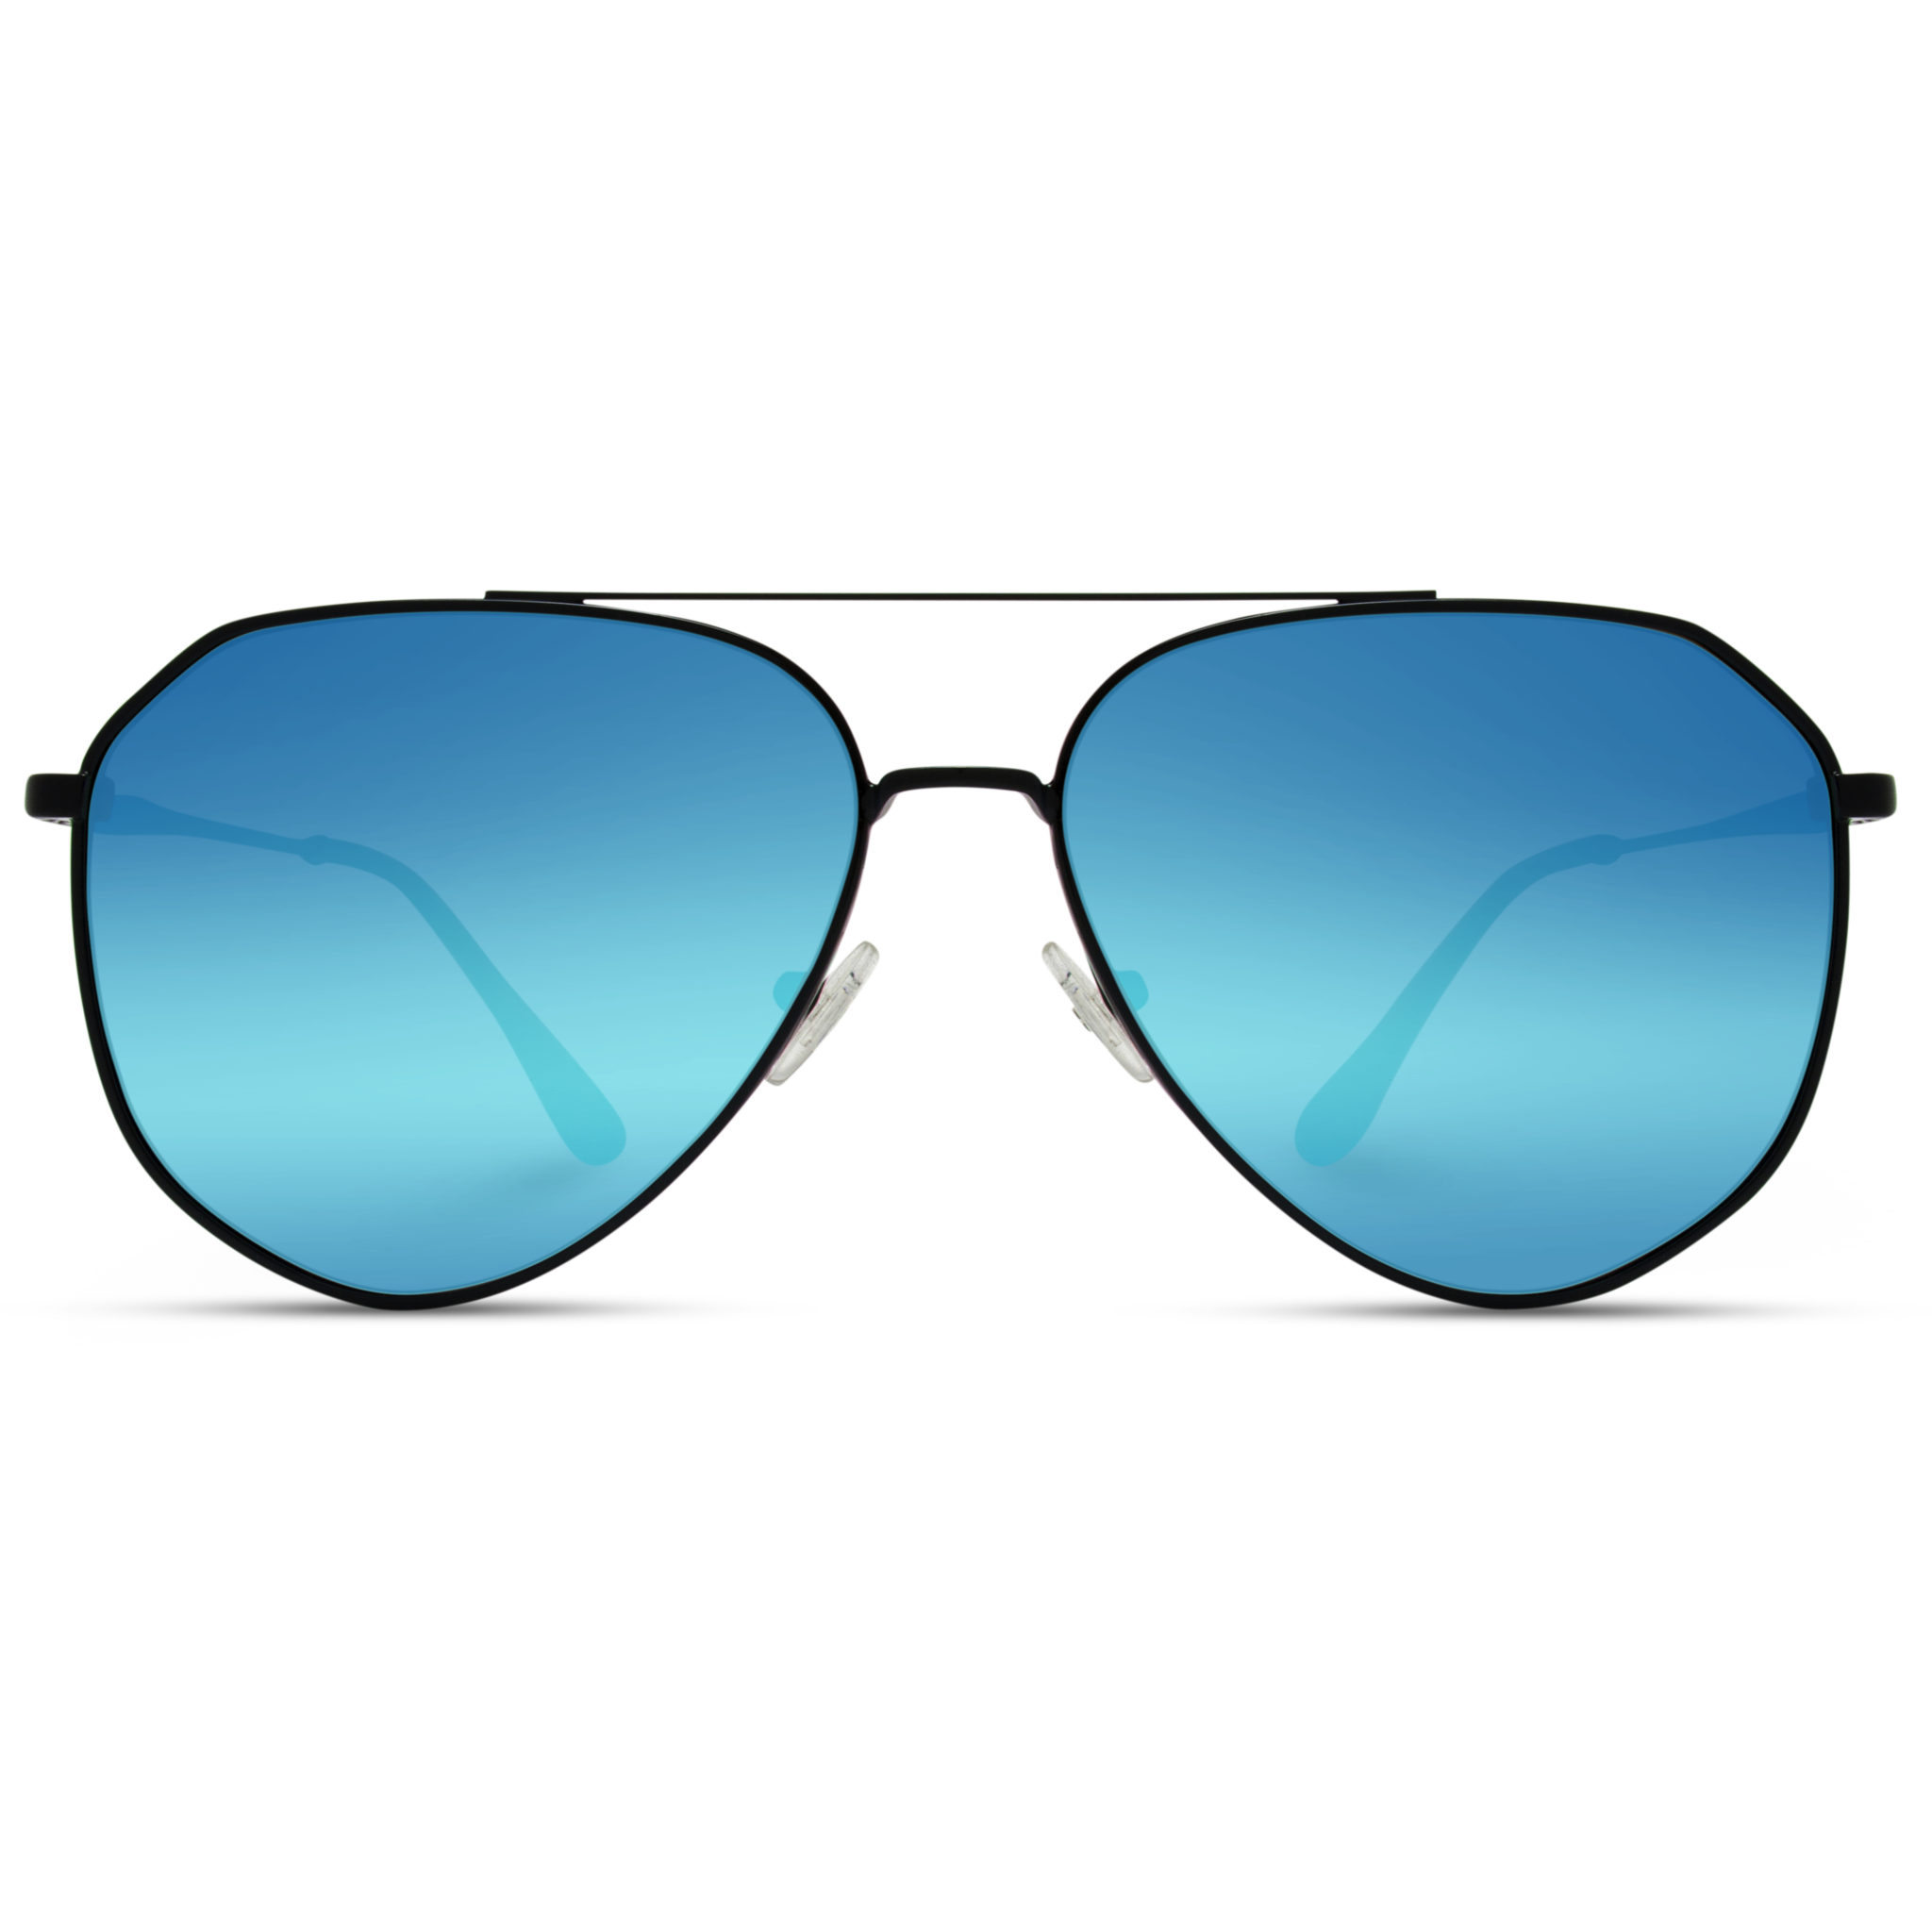 Aaron Modern Polarized Aviators Sunglasses The Aaron Puts A Modern Spin On The Cla Black Background Images Studio Background Images Photoshop Backgrounds Free